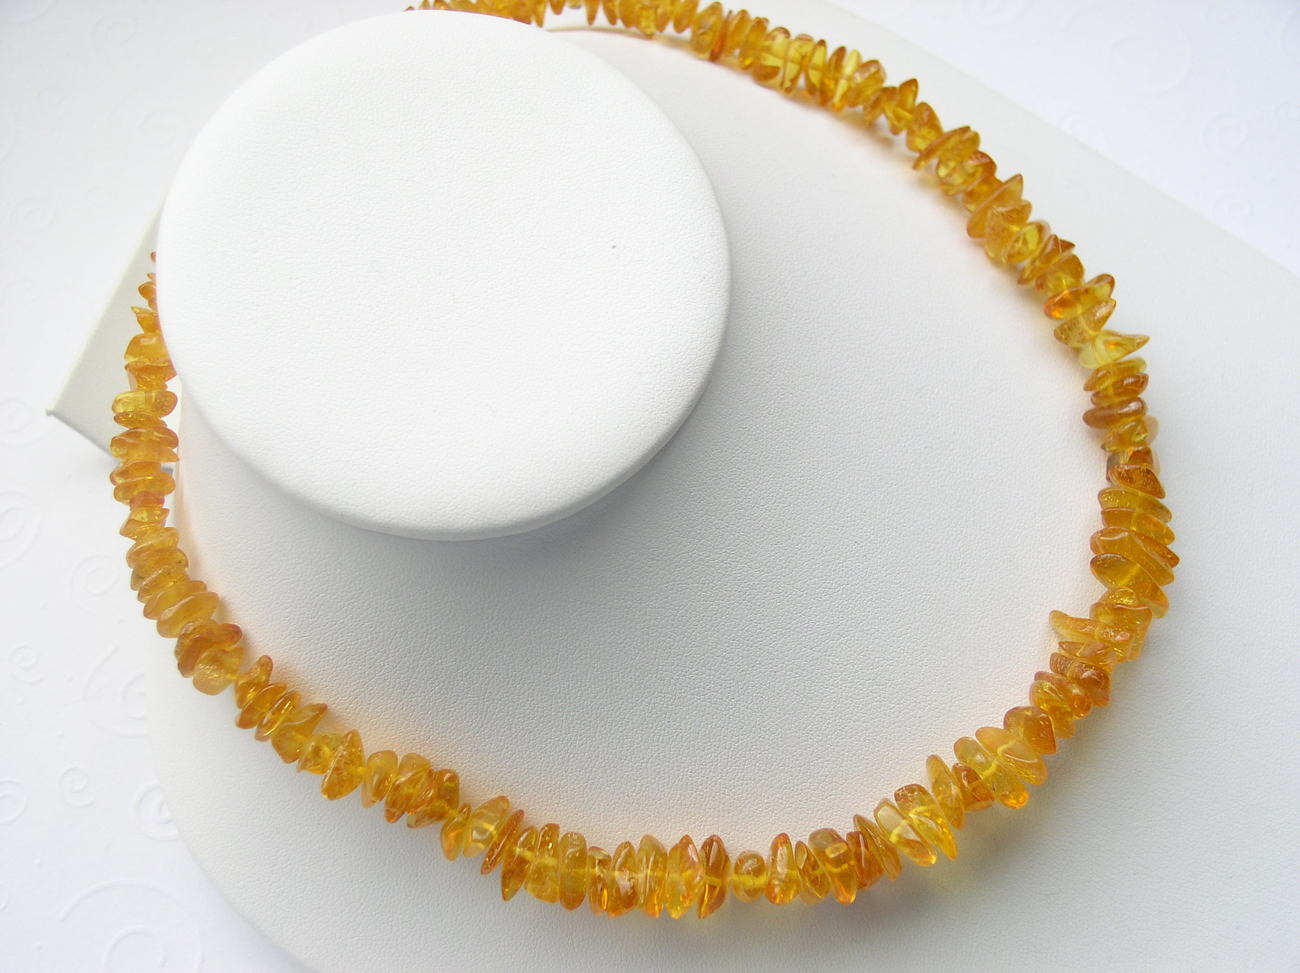 Genuine Baltic Amber Necklace Rich Honey Lemon